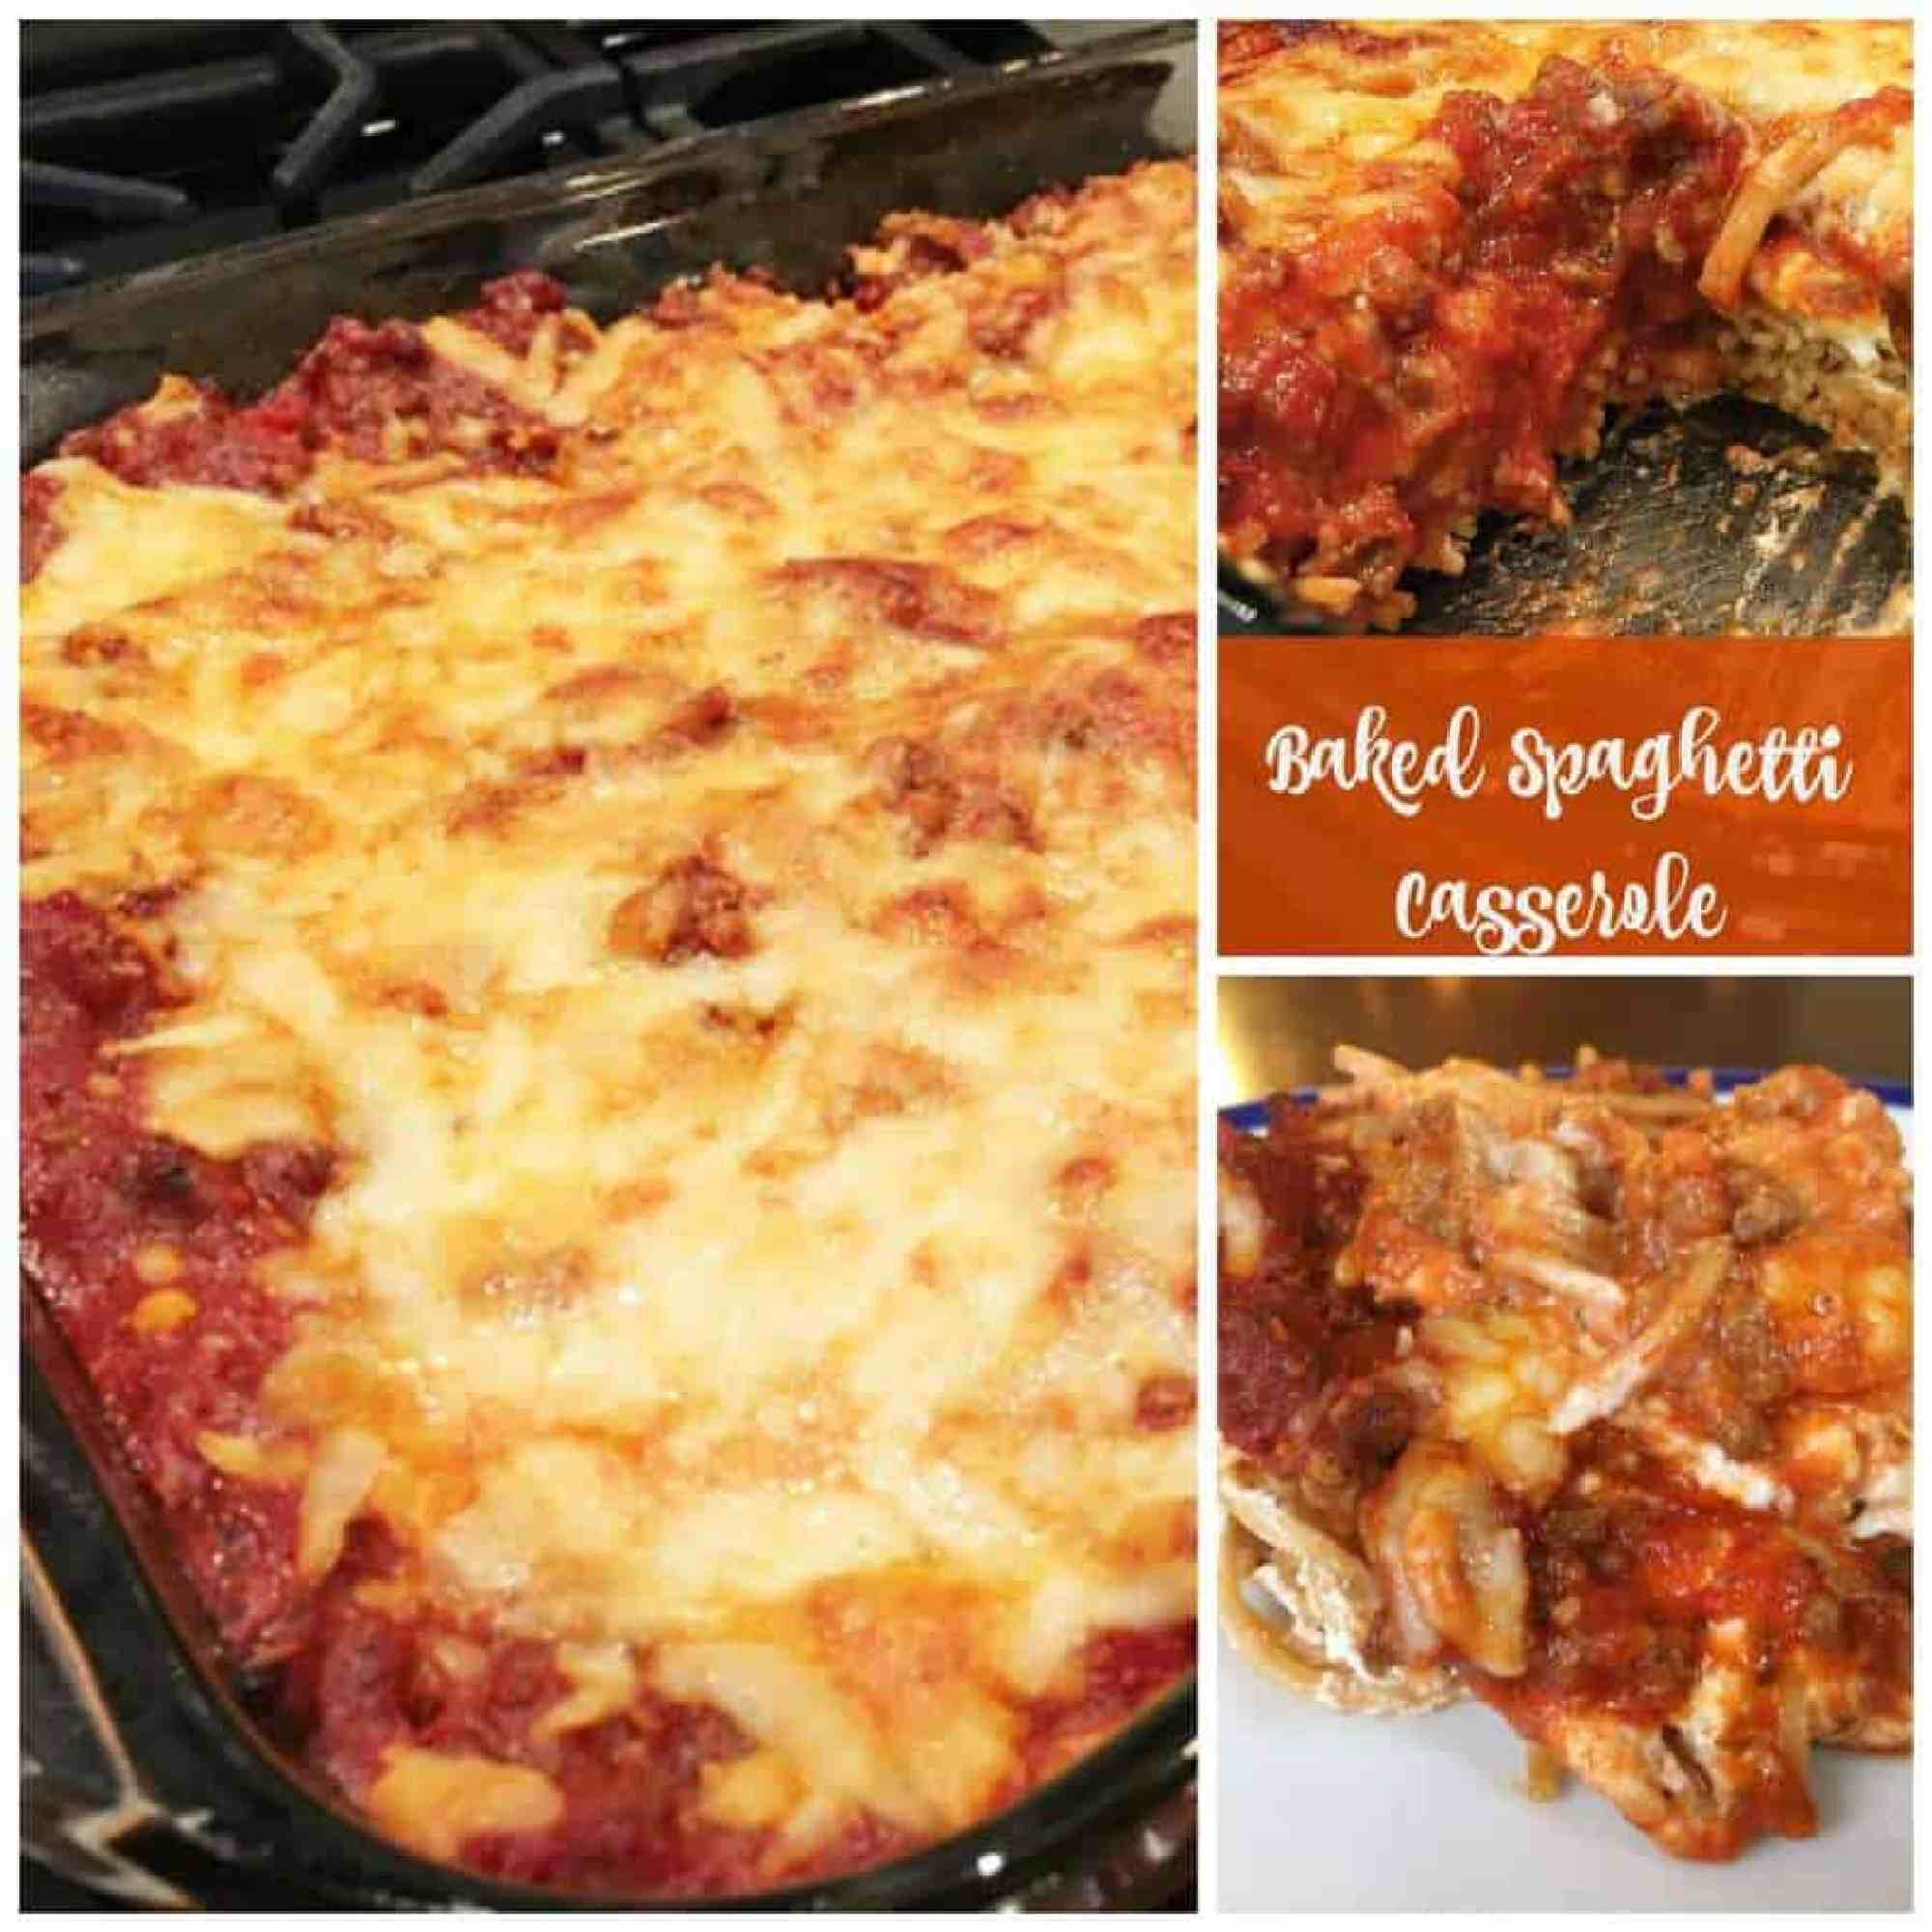 Baked Spaghetti Casserole - The Best Blog Recipes